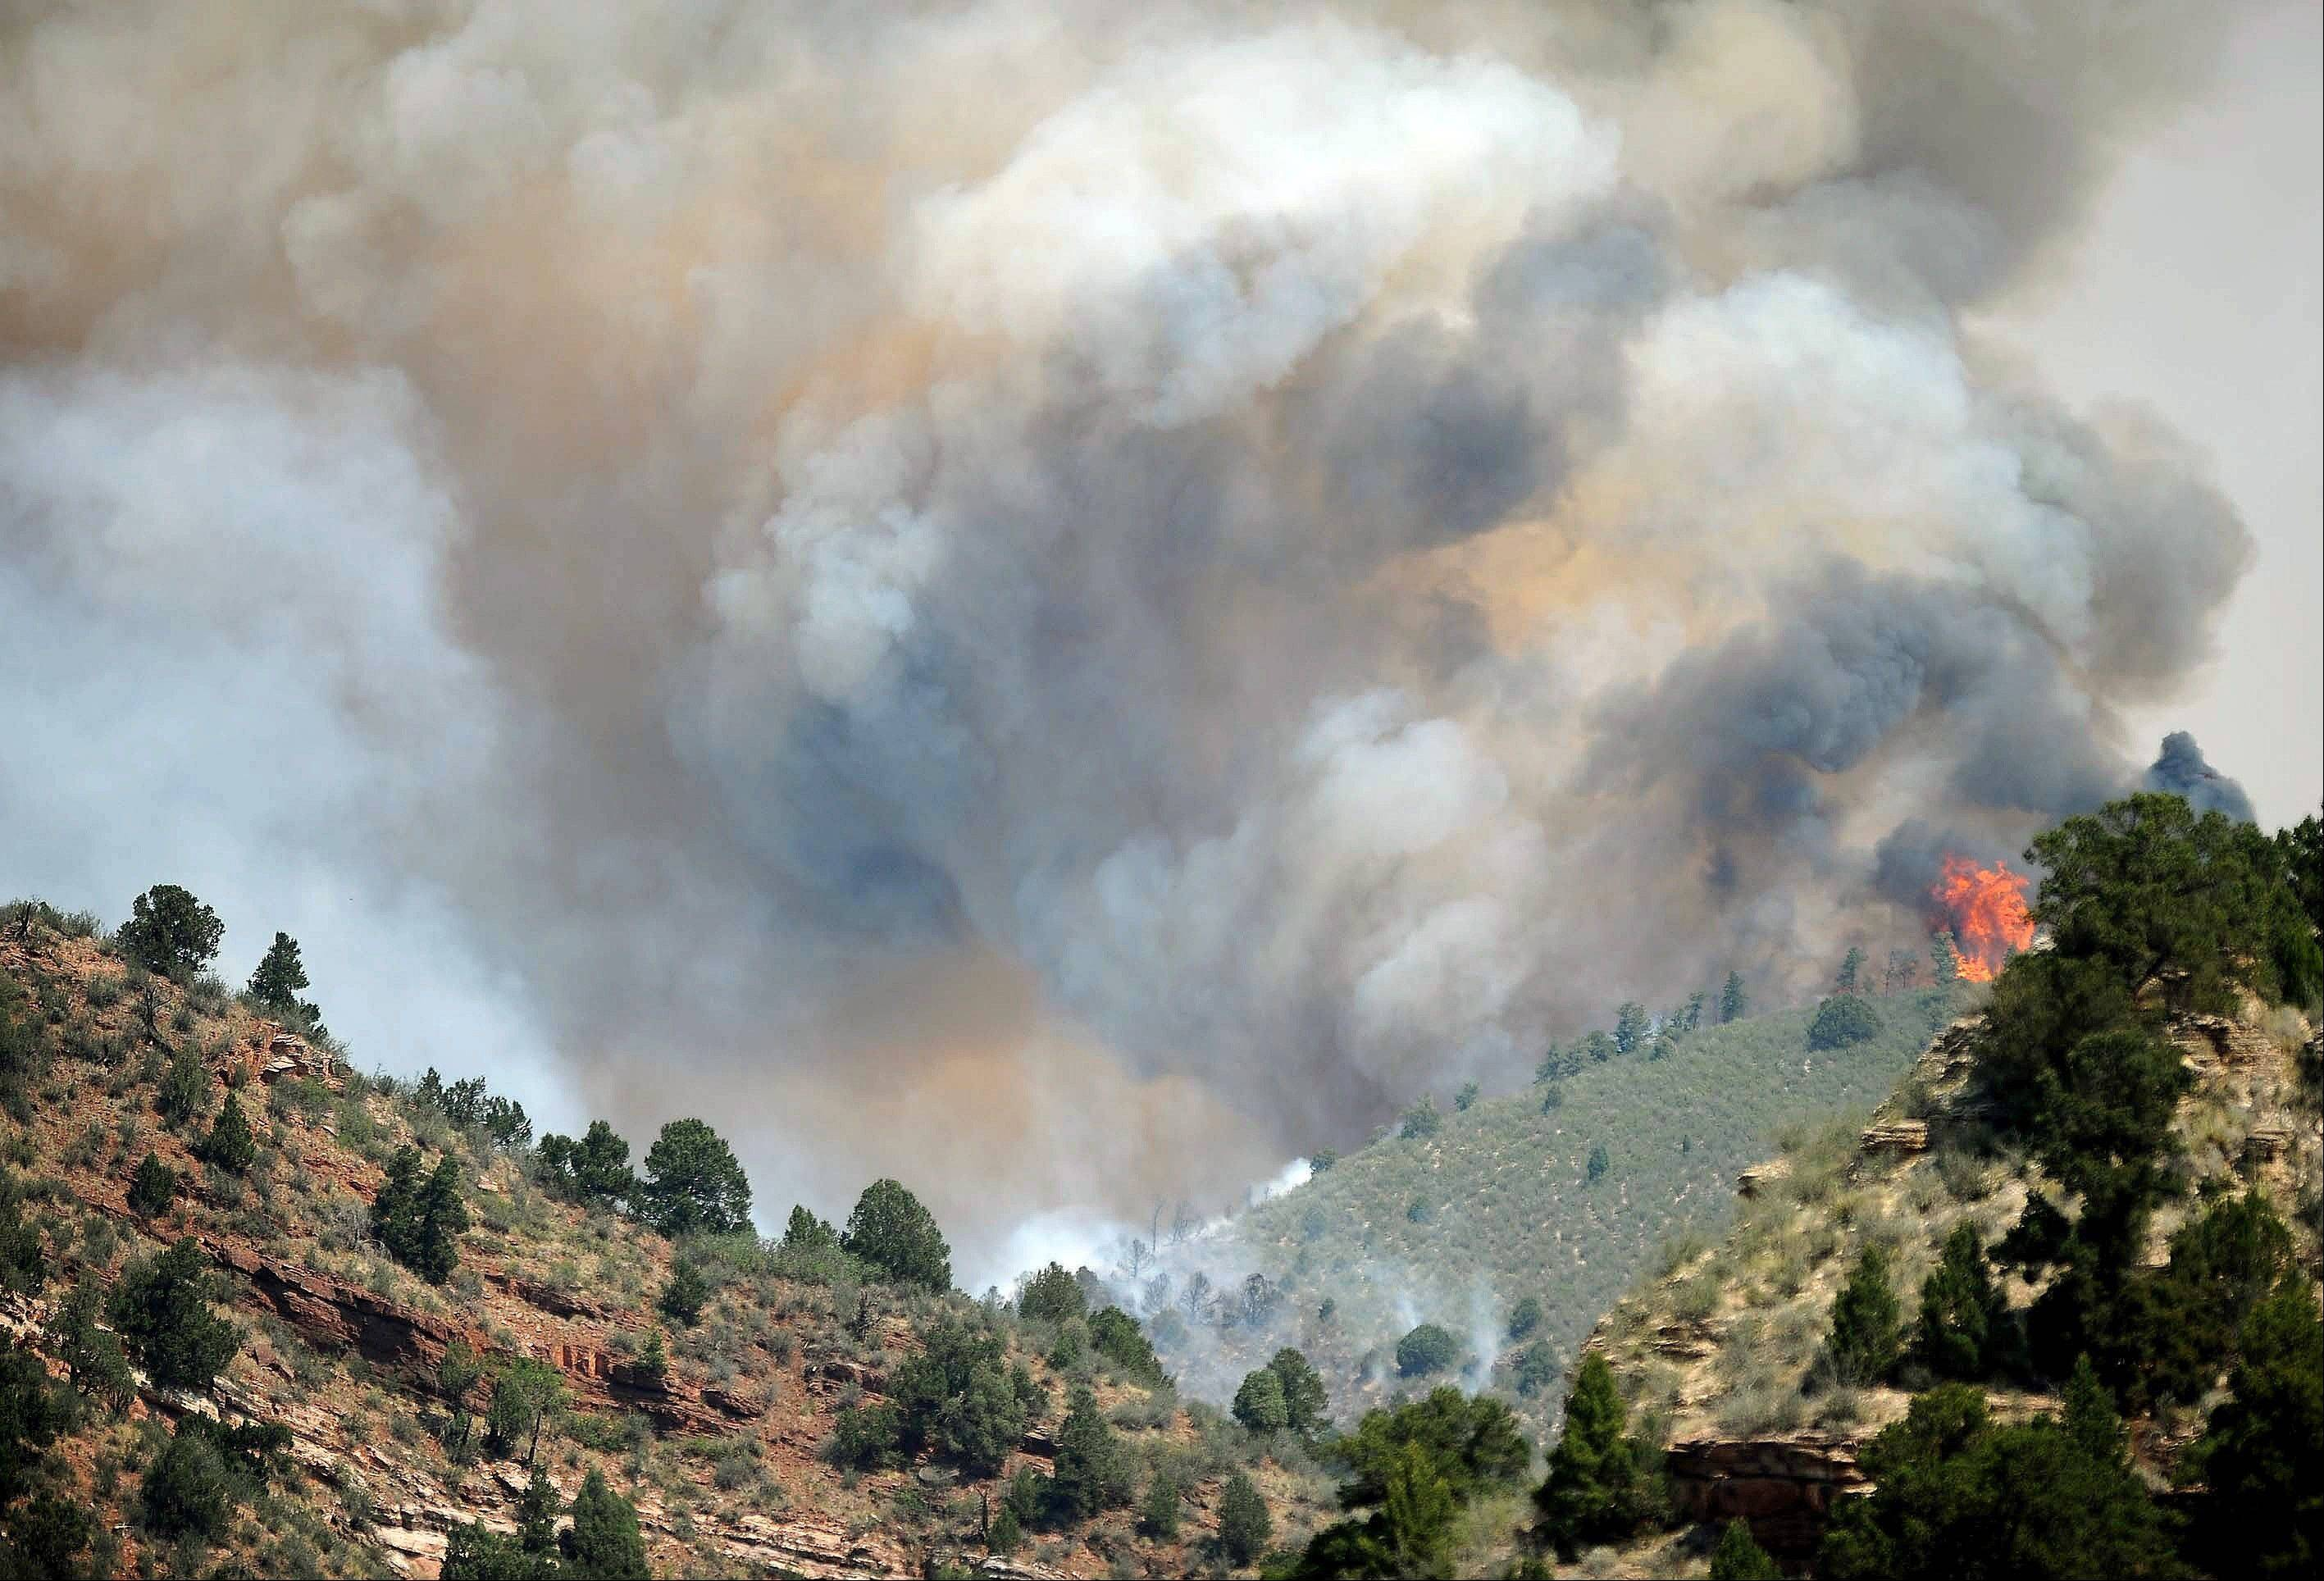 A wildfire burns west of Manitou Springs, Colo., on Sunday, June 24, 2012. The fire erupted and grew out of control to more than 3 square miles early Sunday, prompting the evacuation of more than 11,000 residents and an unknown number of tourists.